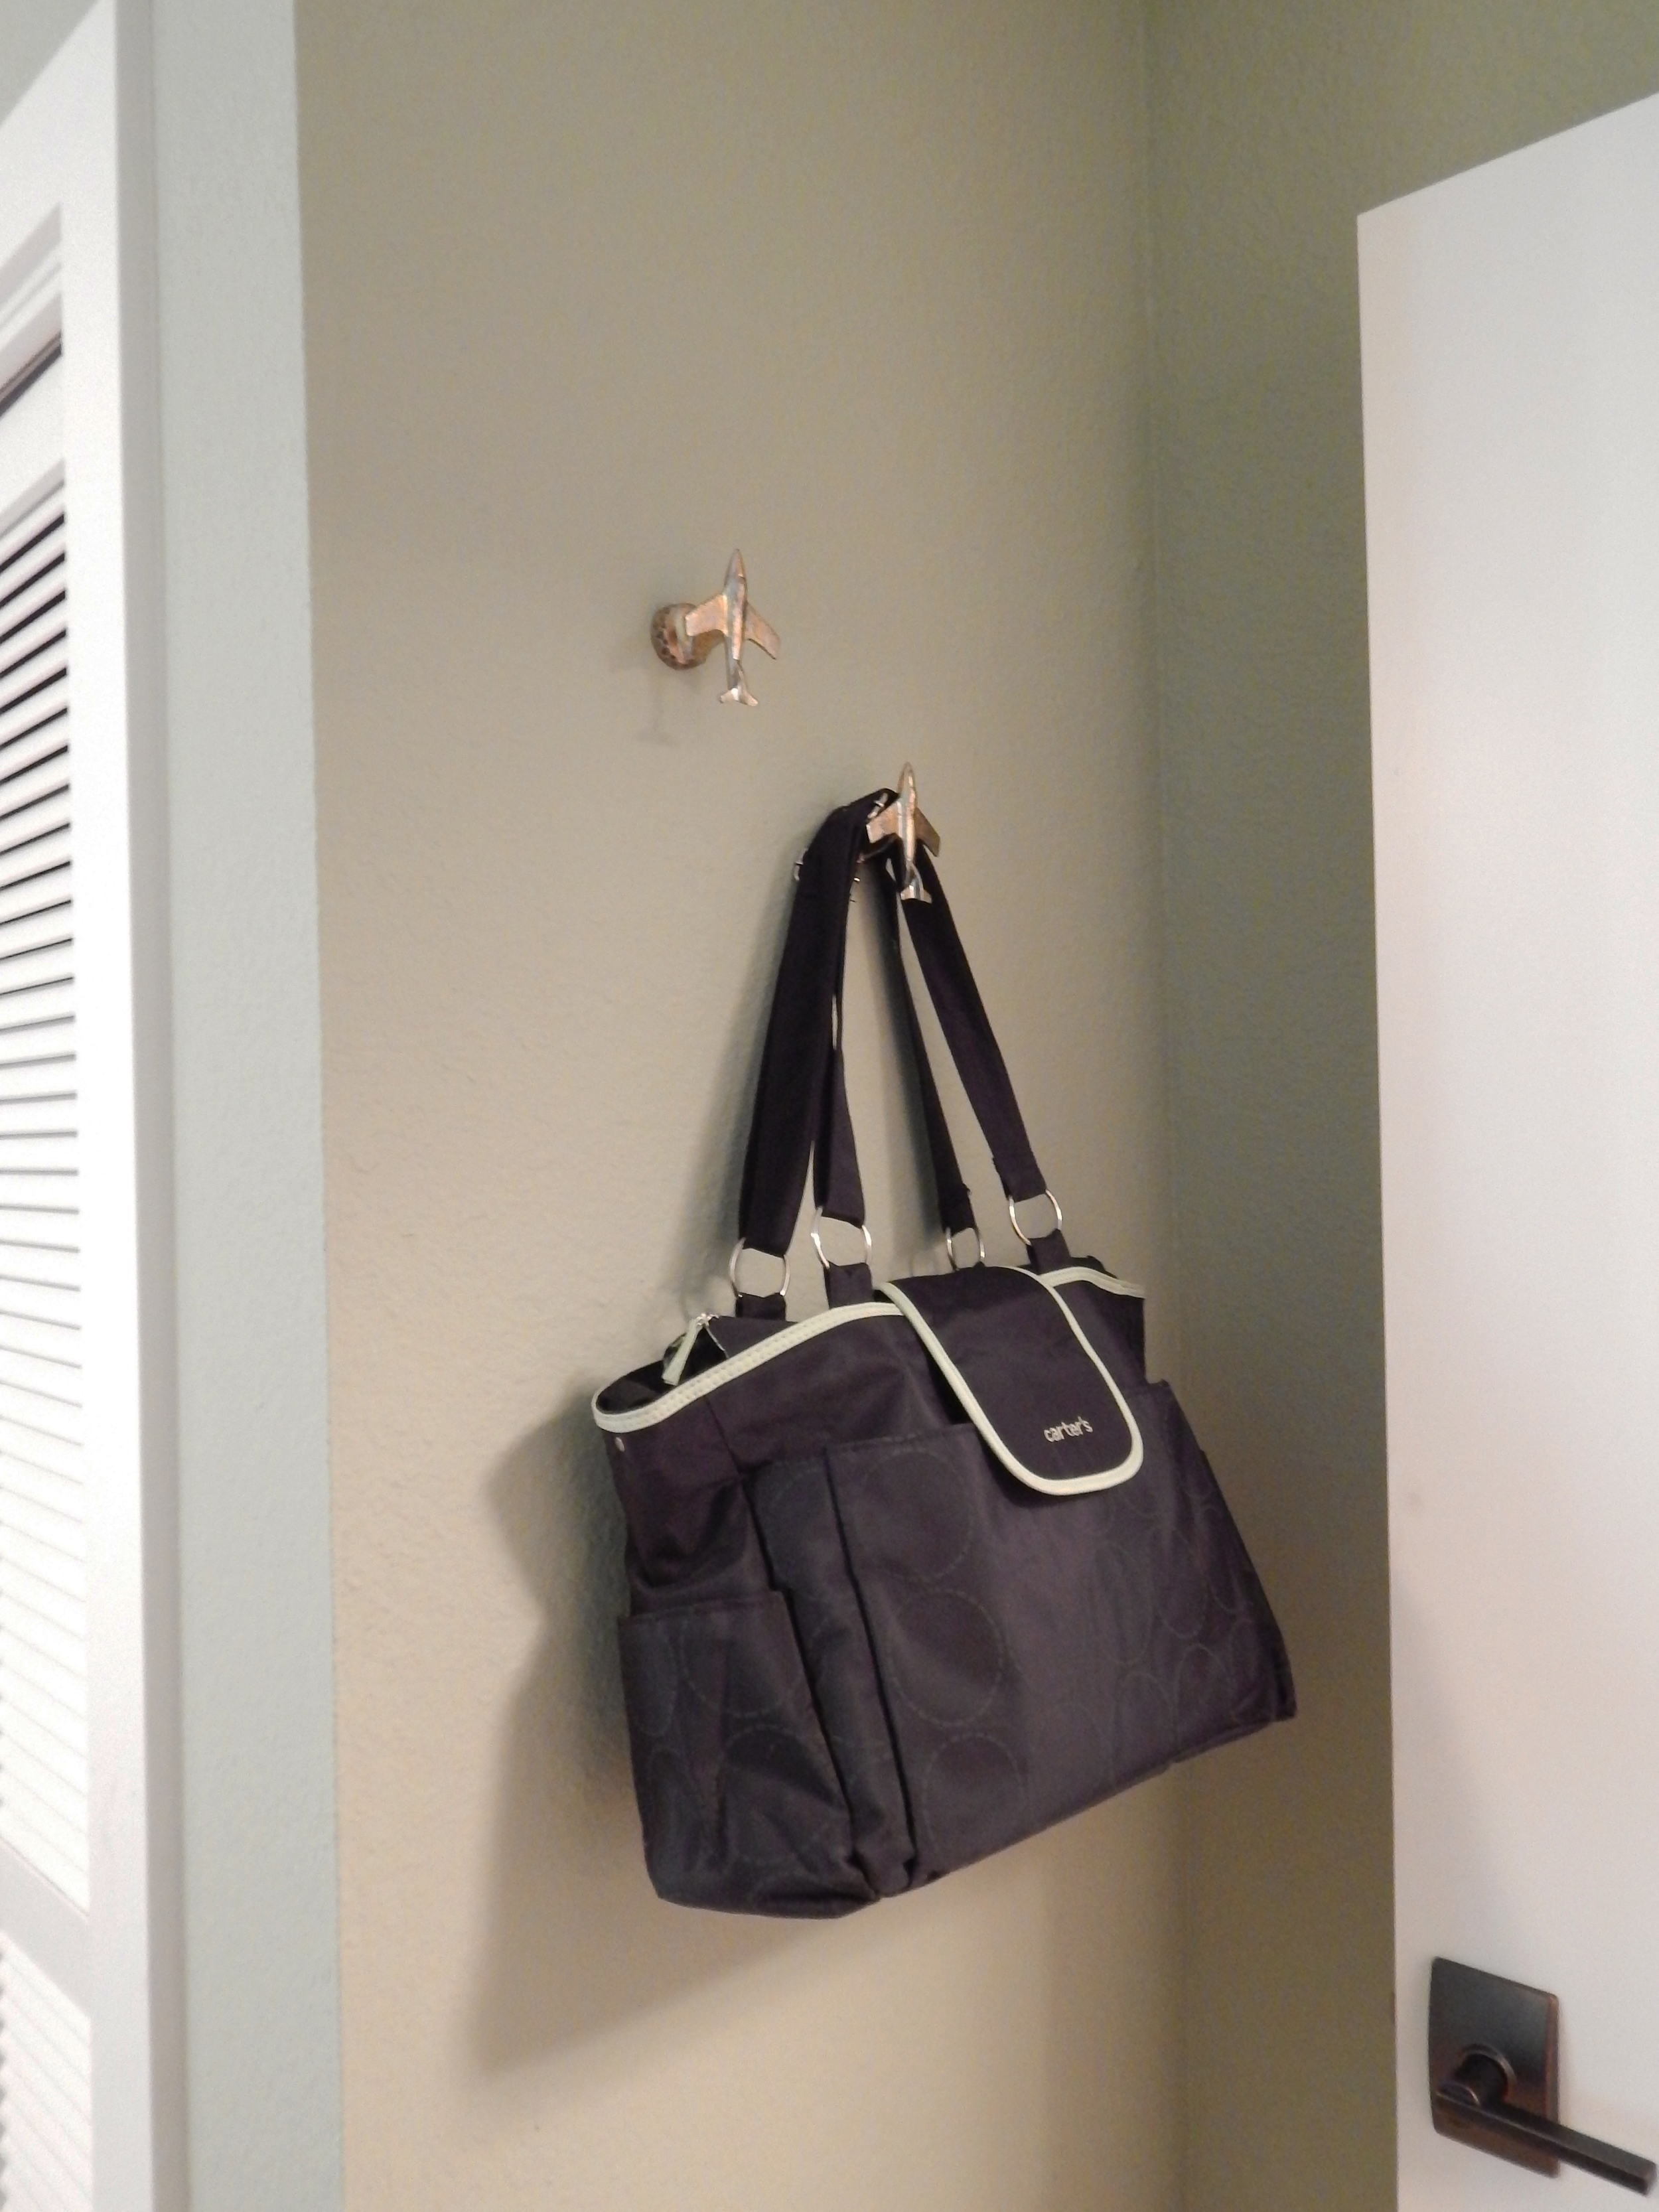 Airplane hooks by the entry door